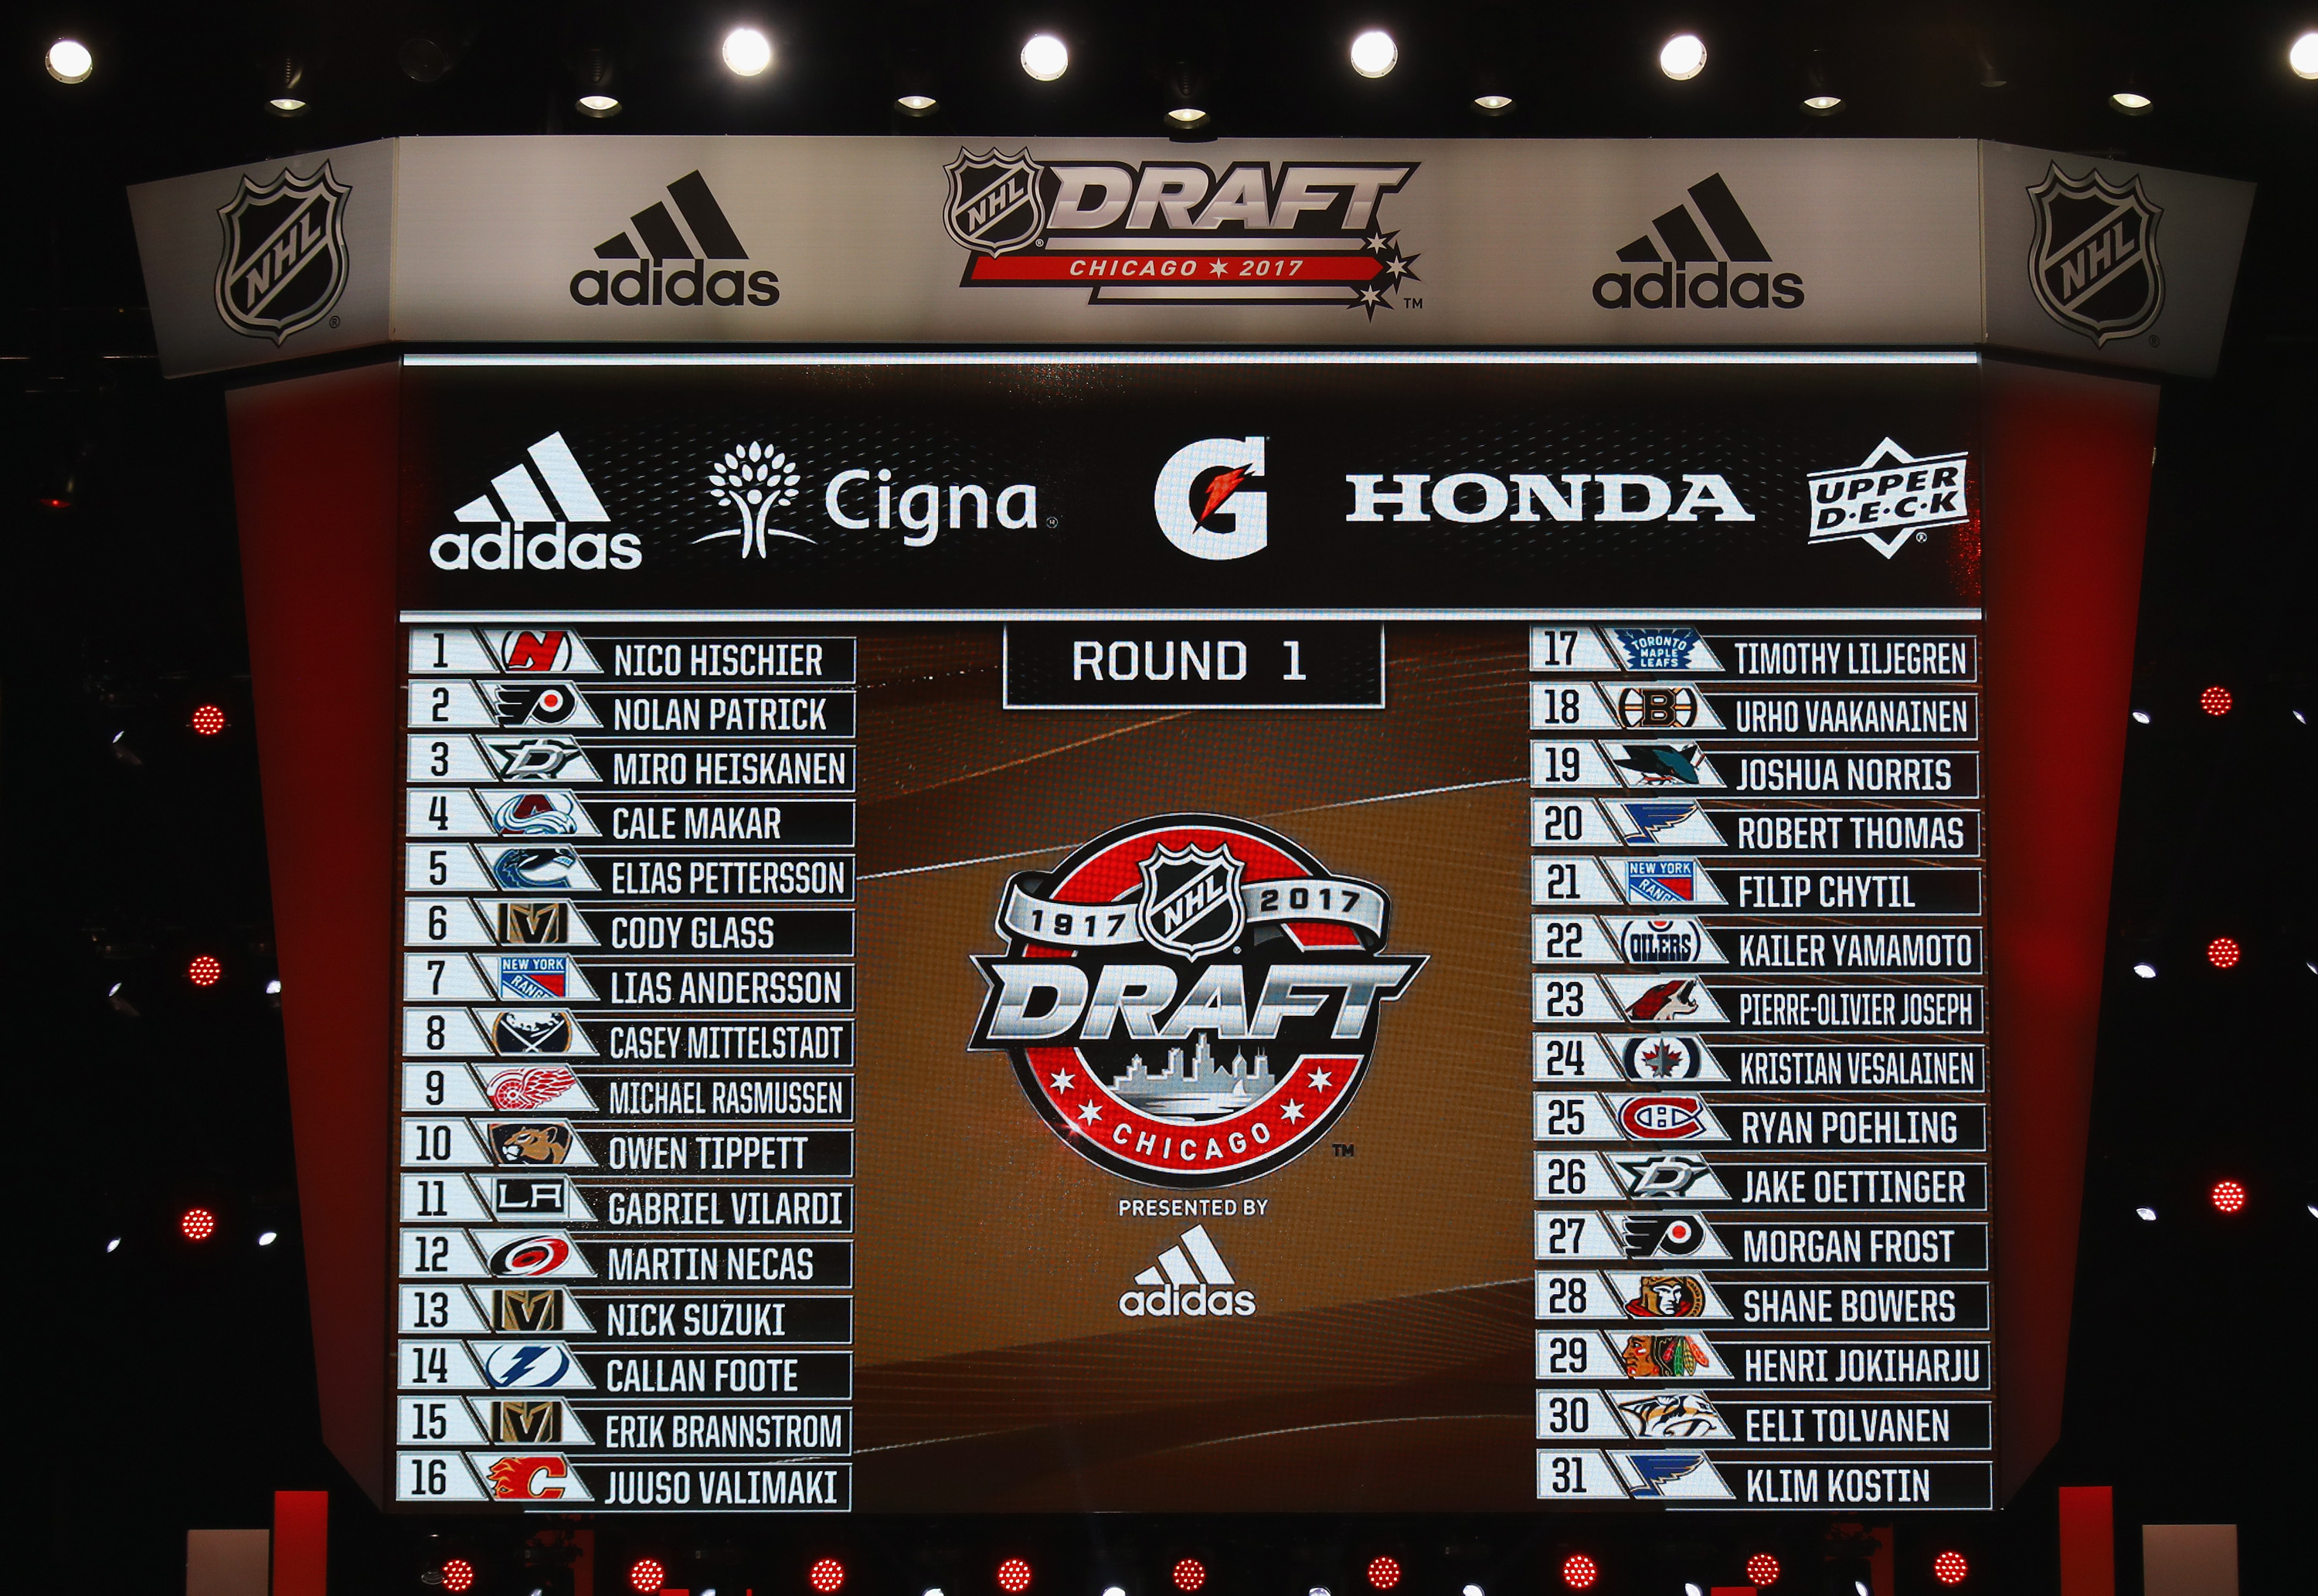 CHICAGO, IL - JUNE 24: A general view of the first round draft picks board during the 2017 NHL Draft at the United Center on June 24, 2017 in Chicago, Illinois.